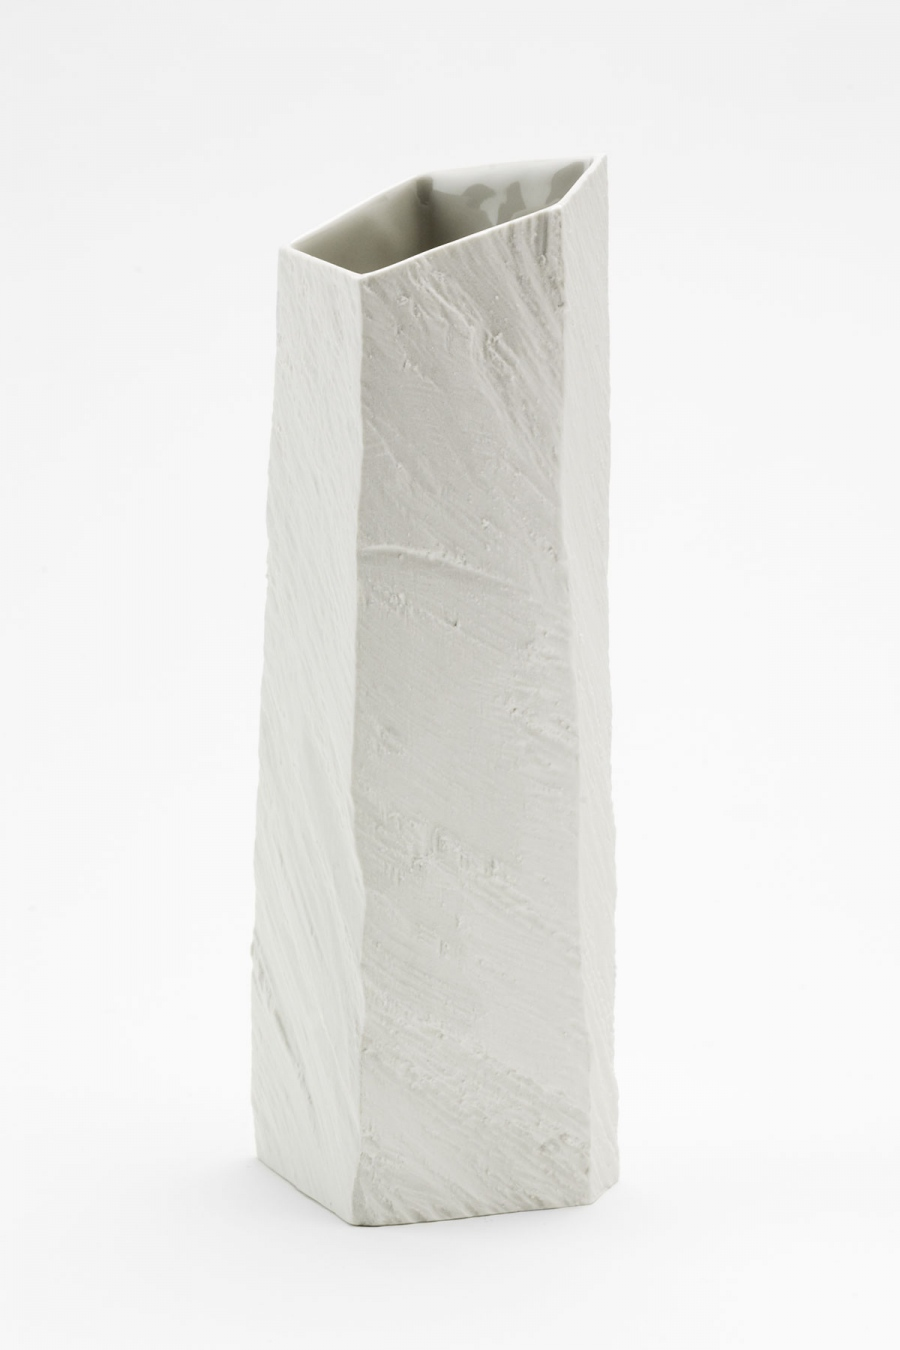 Vase L white raw Woodraw